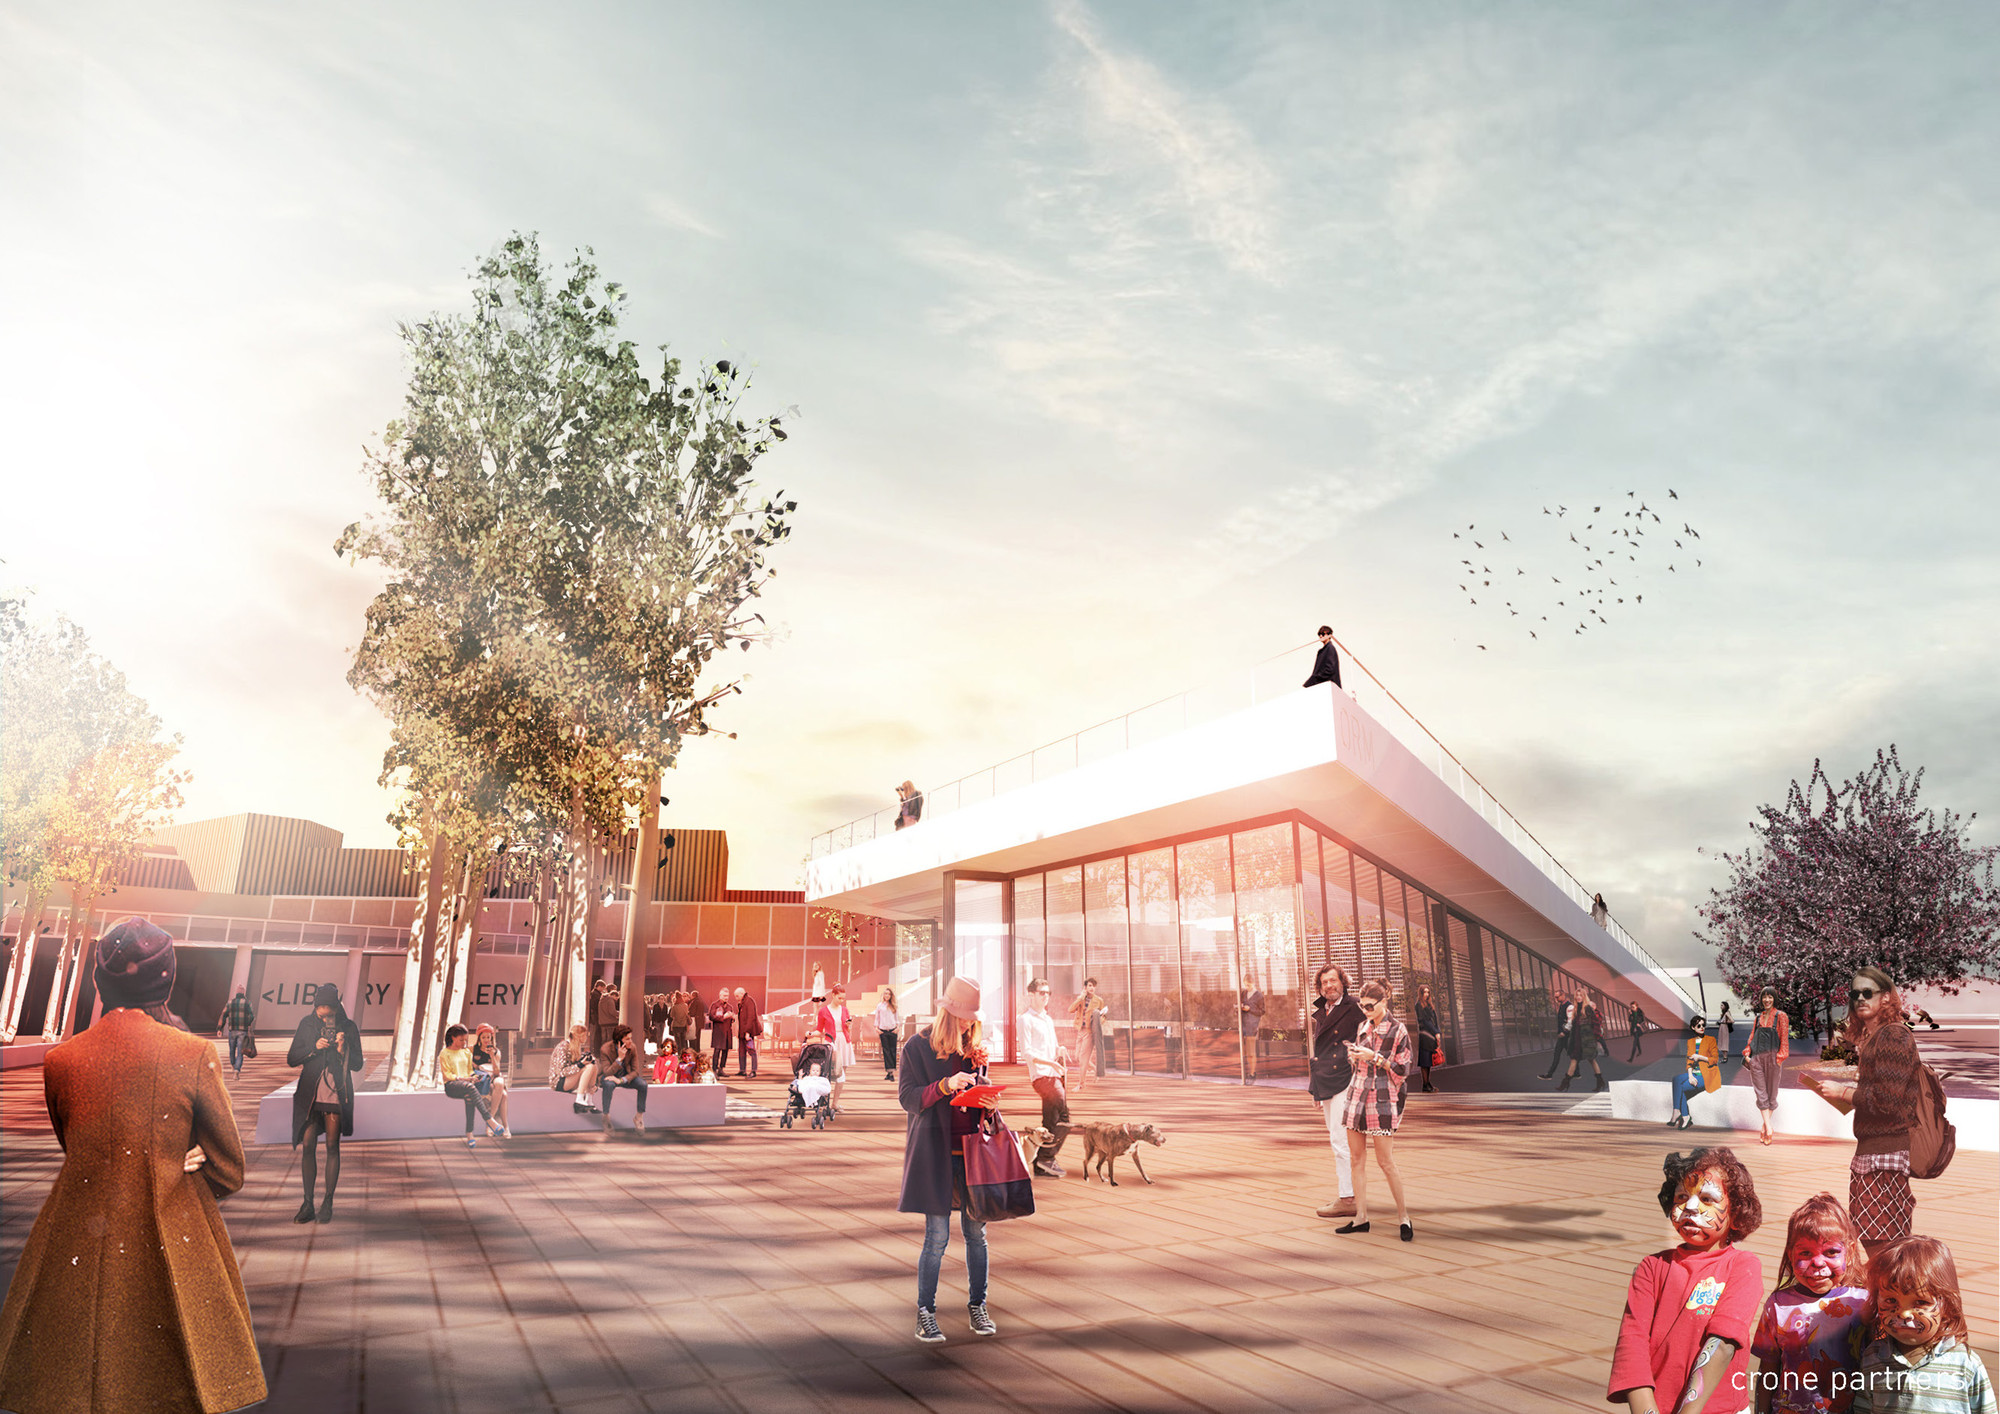 Orange Regional Museum Winning Proposal / Crone Partners, Courtesy of Crone Partners